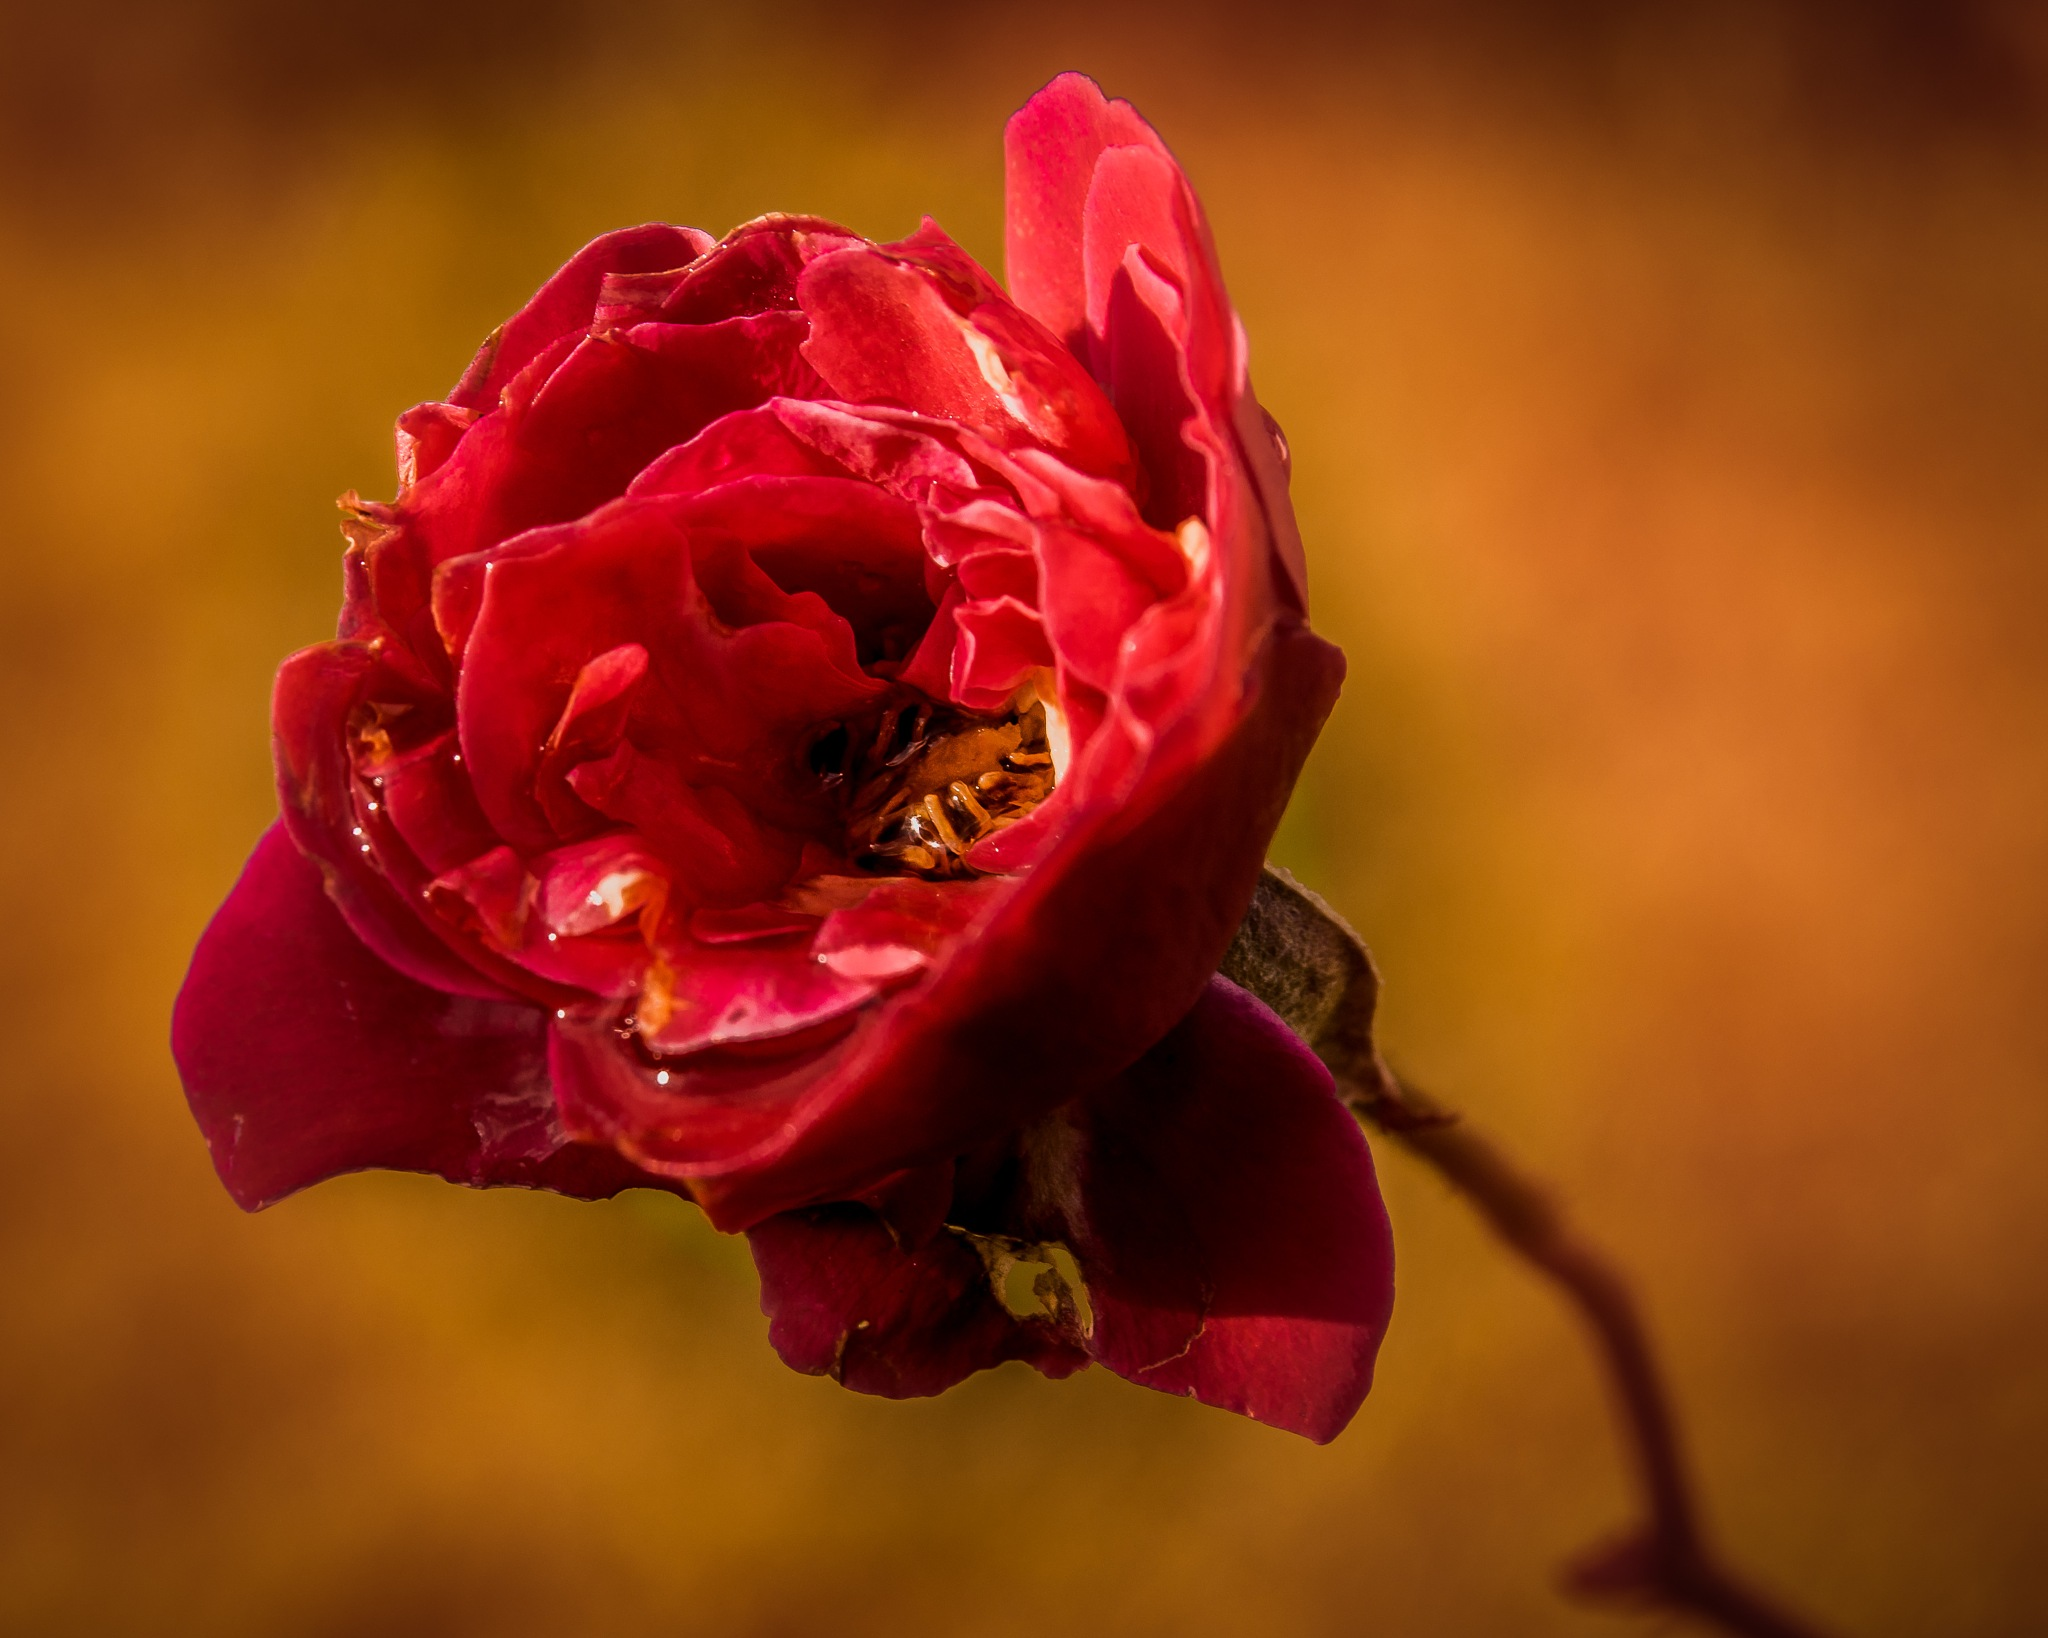 The end of life for the red rose by Thore's photo